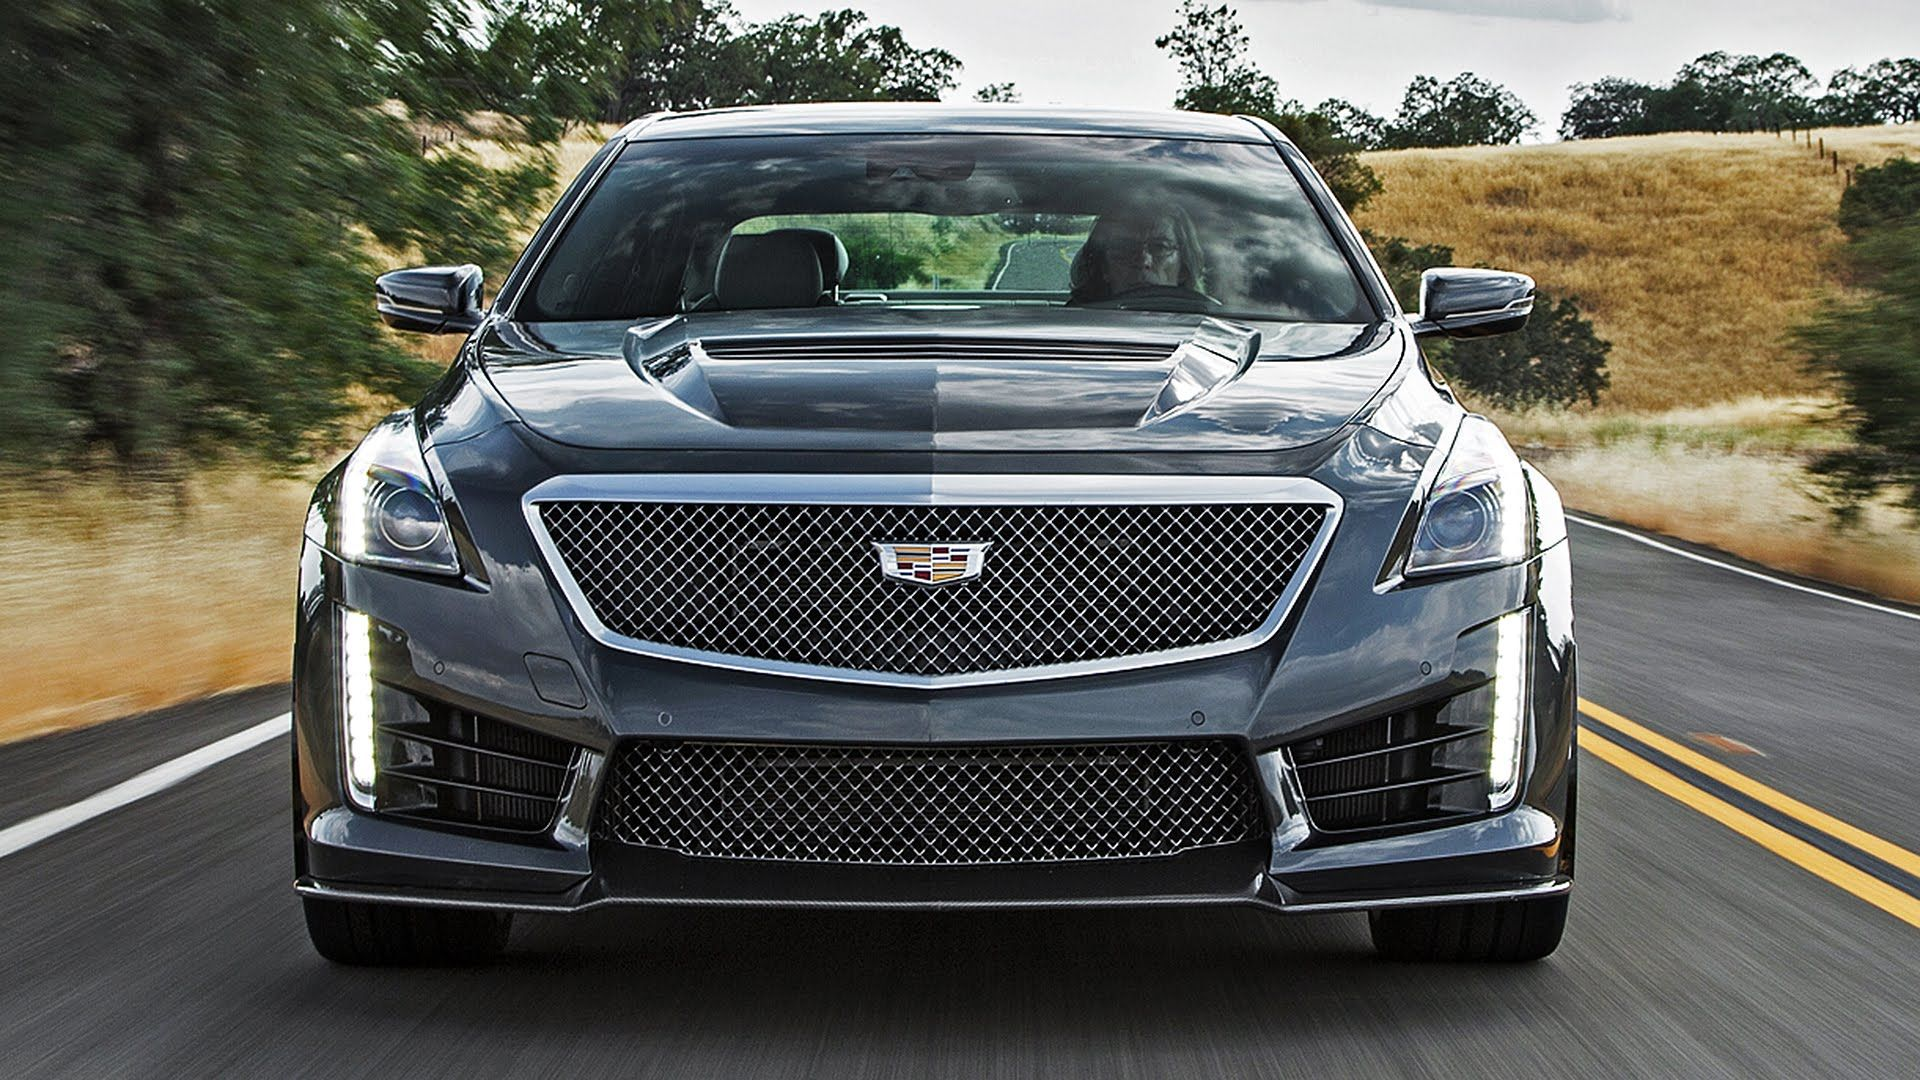 Good 2016 Cadillac CTS V: Just How Good Is The Cadillac With The Corvette Eng